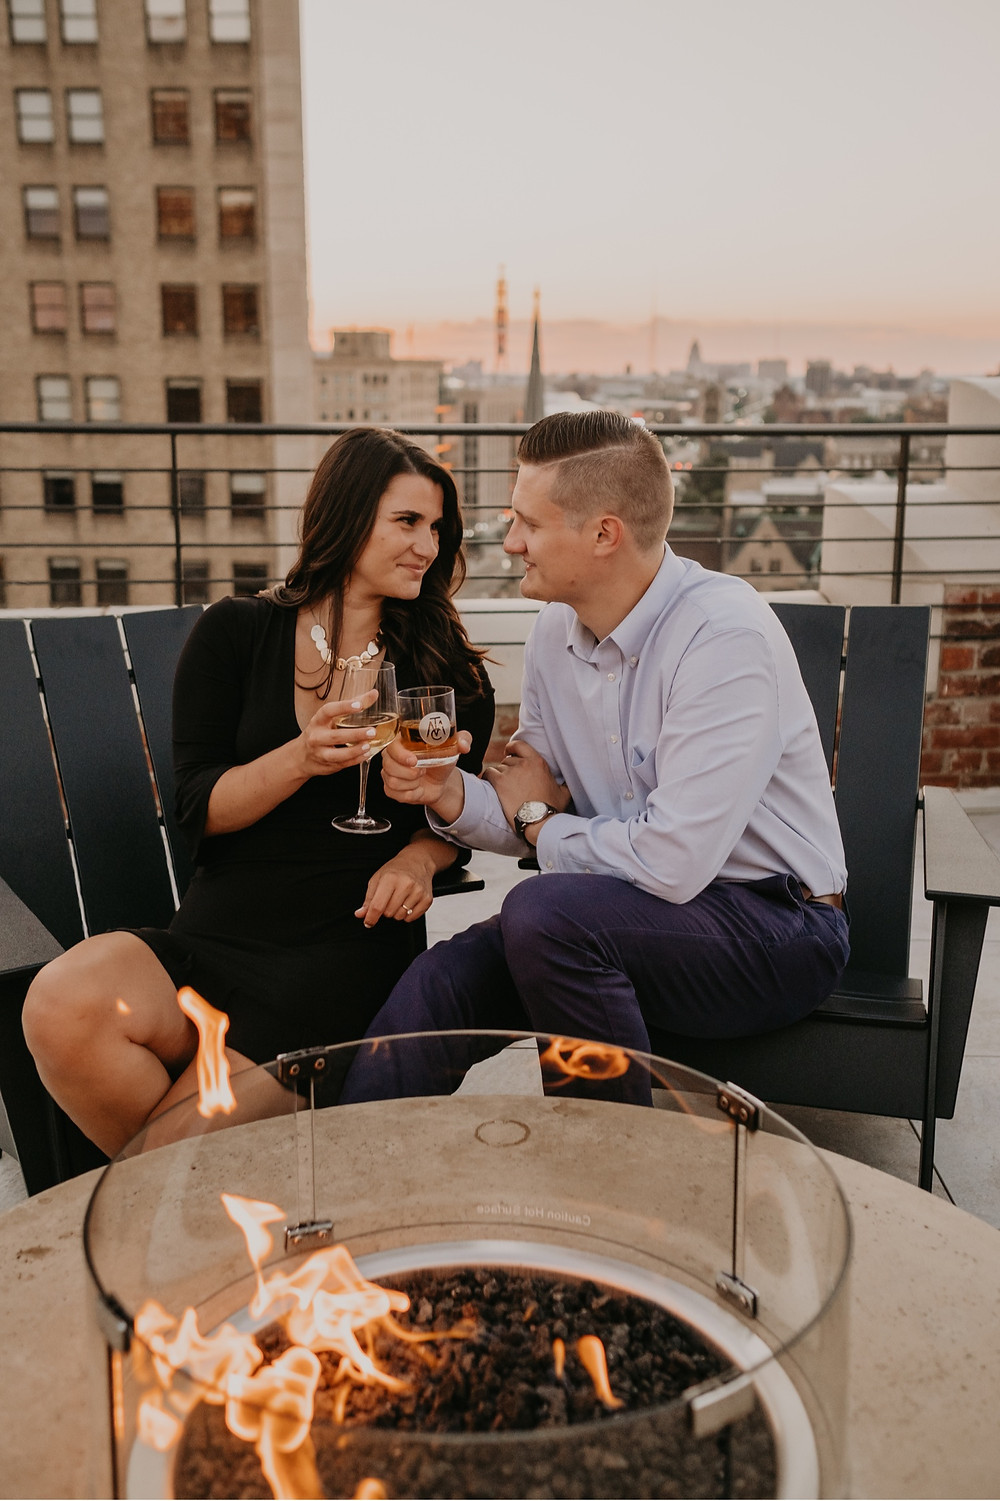 Couple enjoying fire pit on Detroit bar rooftop. Photographed by Nicole Leanne Photography.